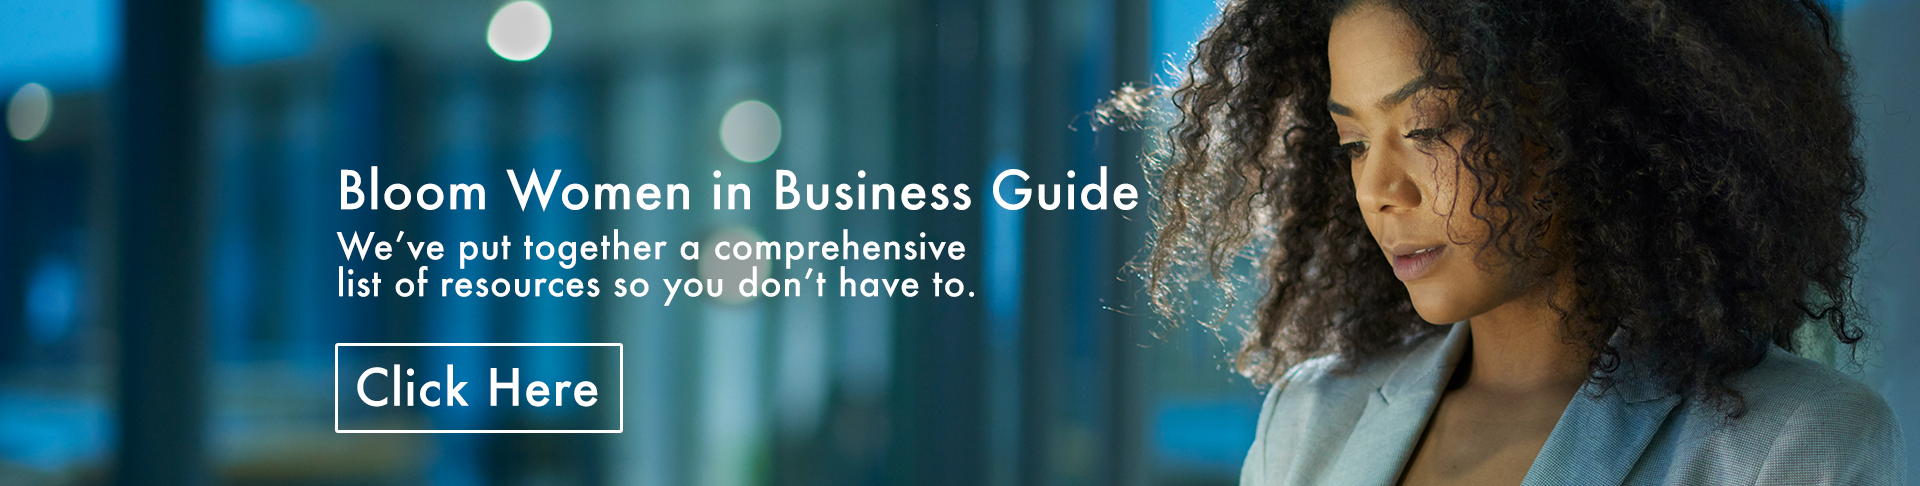 Bloom Woman in Business Guide